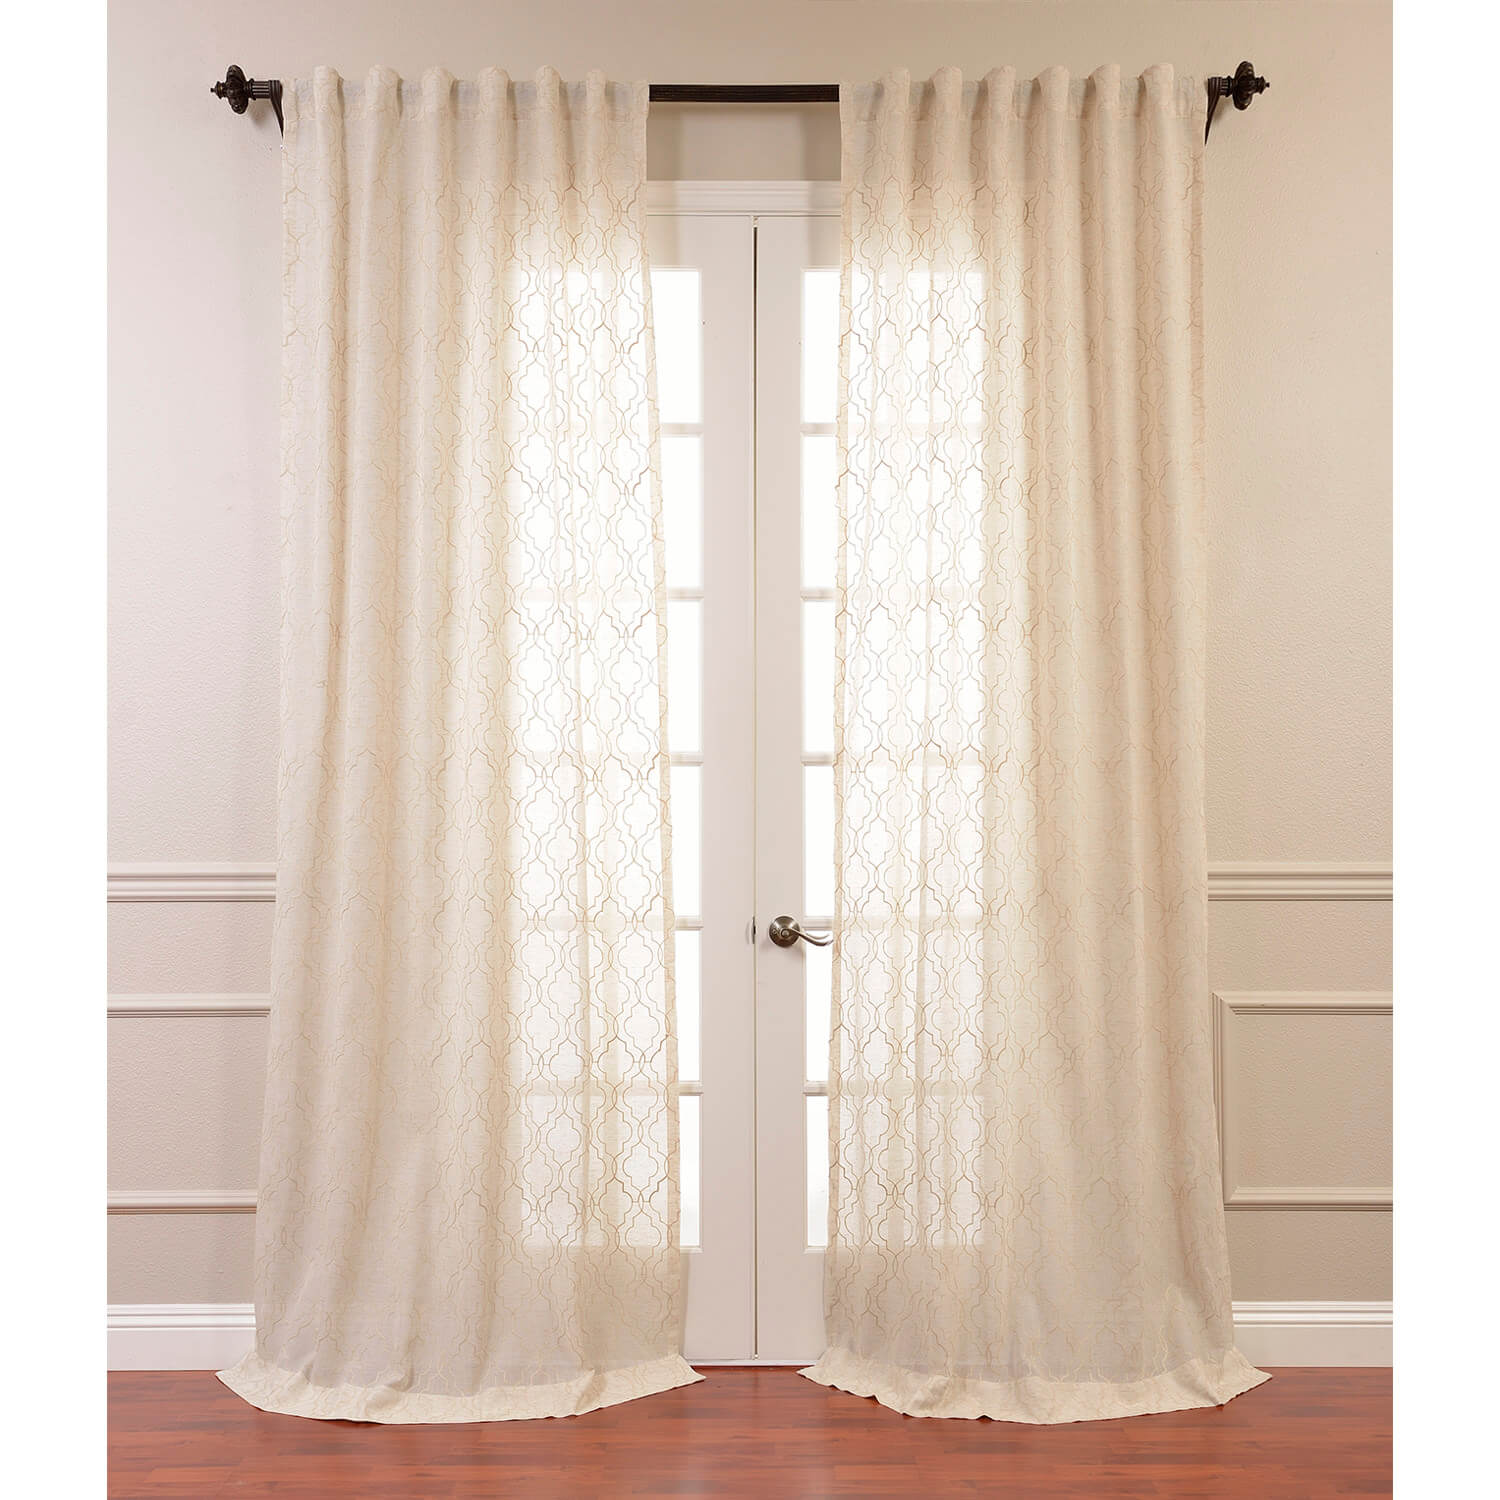 Luxury Interior Home Decorating Ideas with Embroidered Curtains: Home Outfitters Window Coverings | Embroidered Curtains | Floral Embroidered Curtains